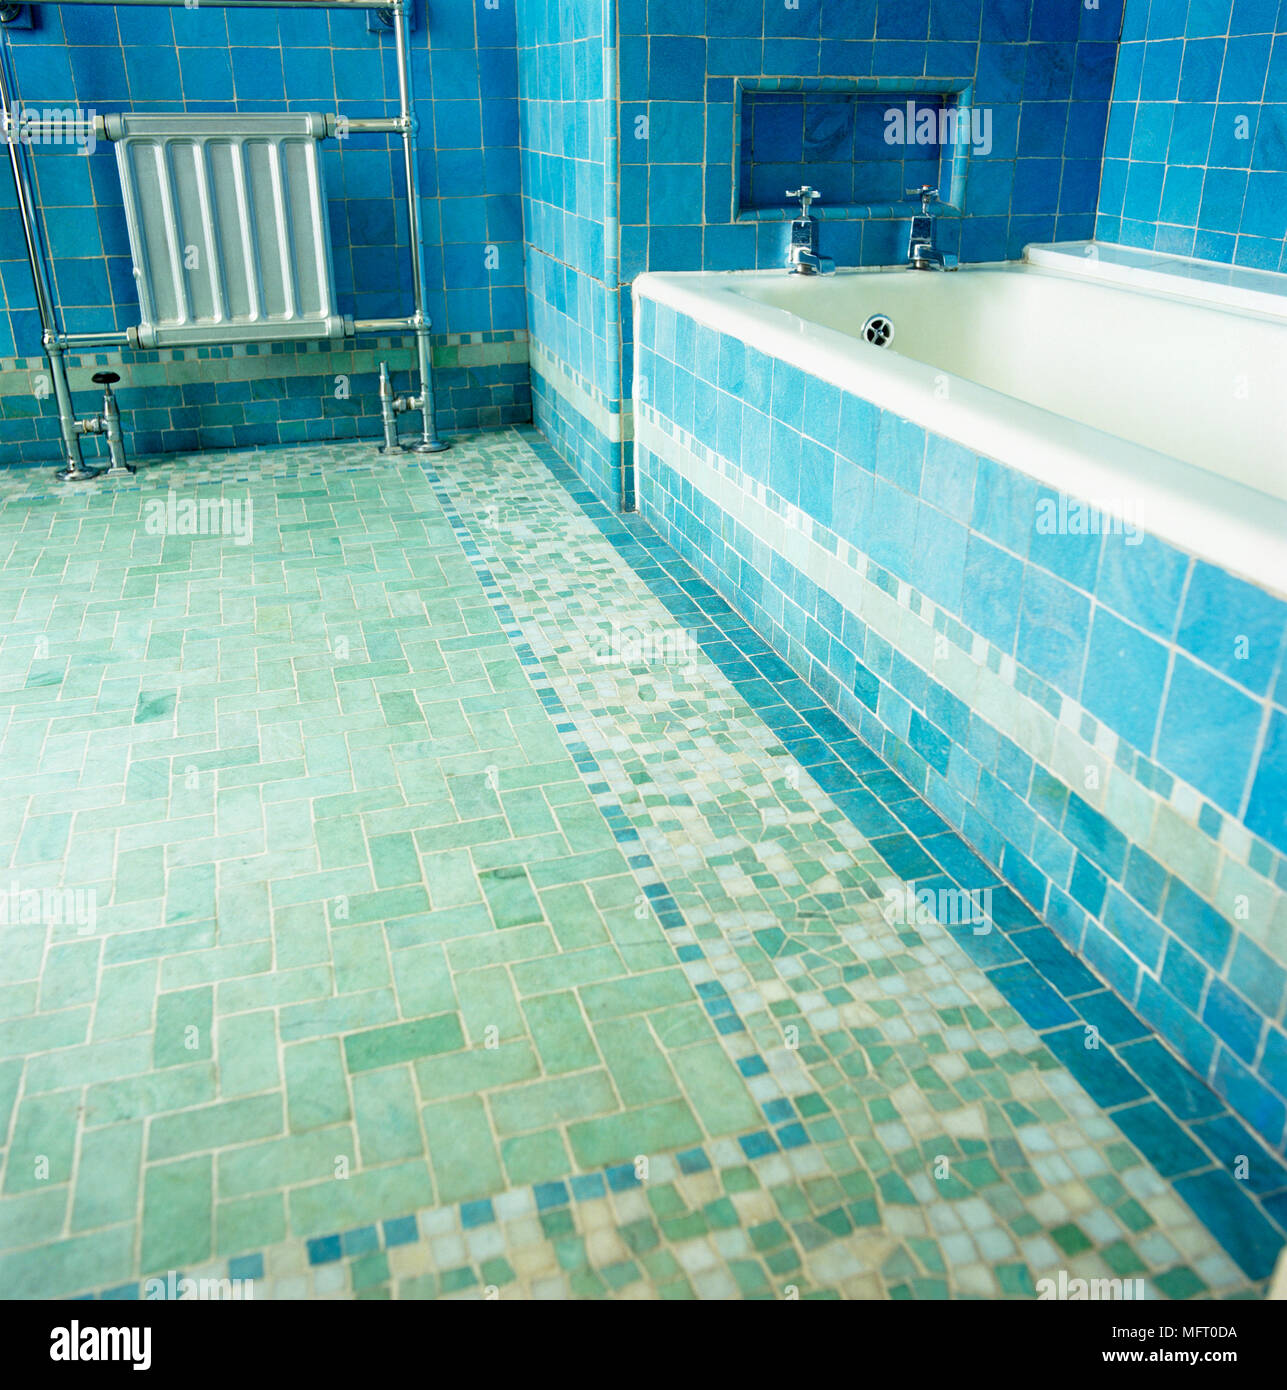 Radiator next to bathtub in blue tiled bathroom Stock Photo ...